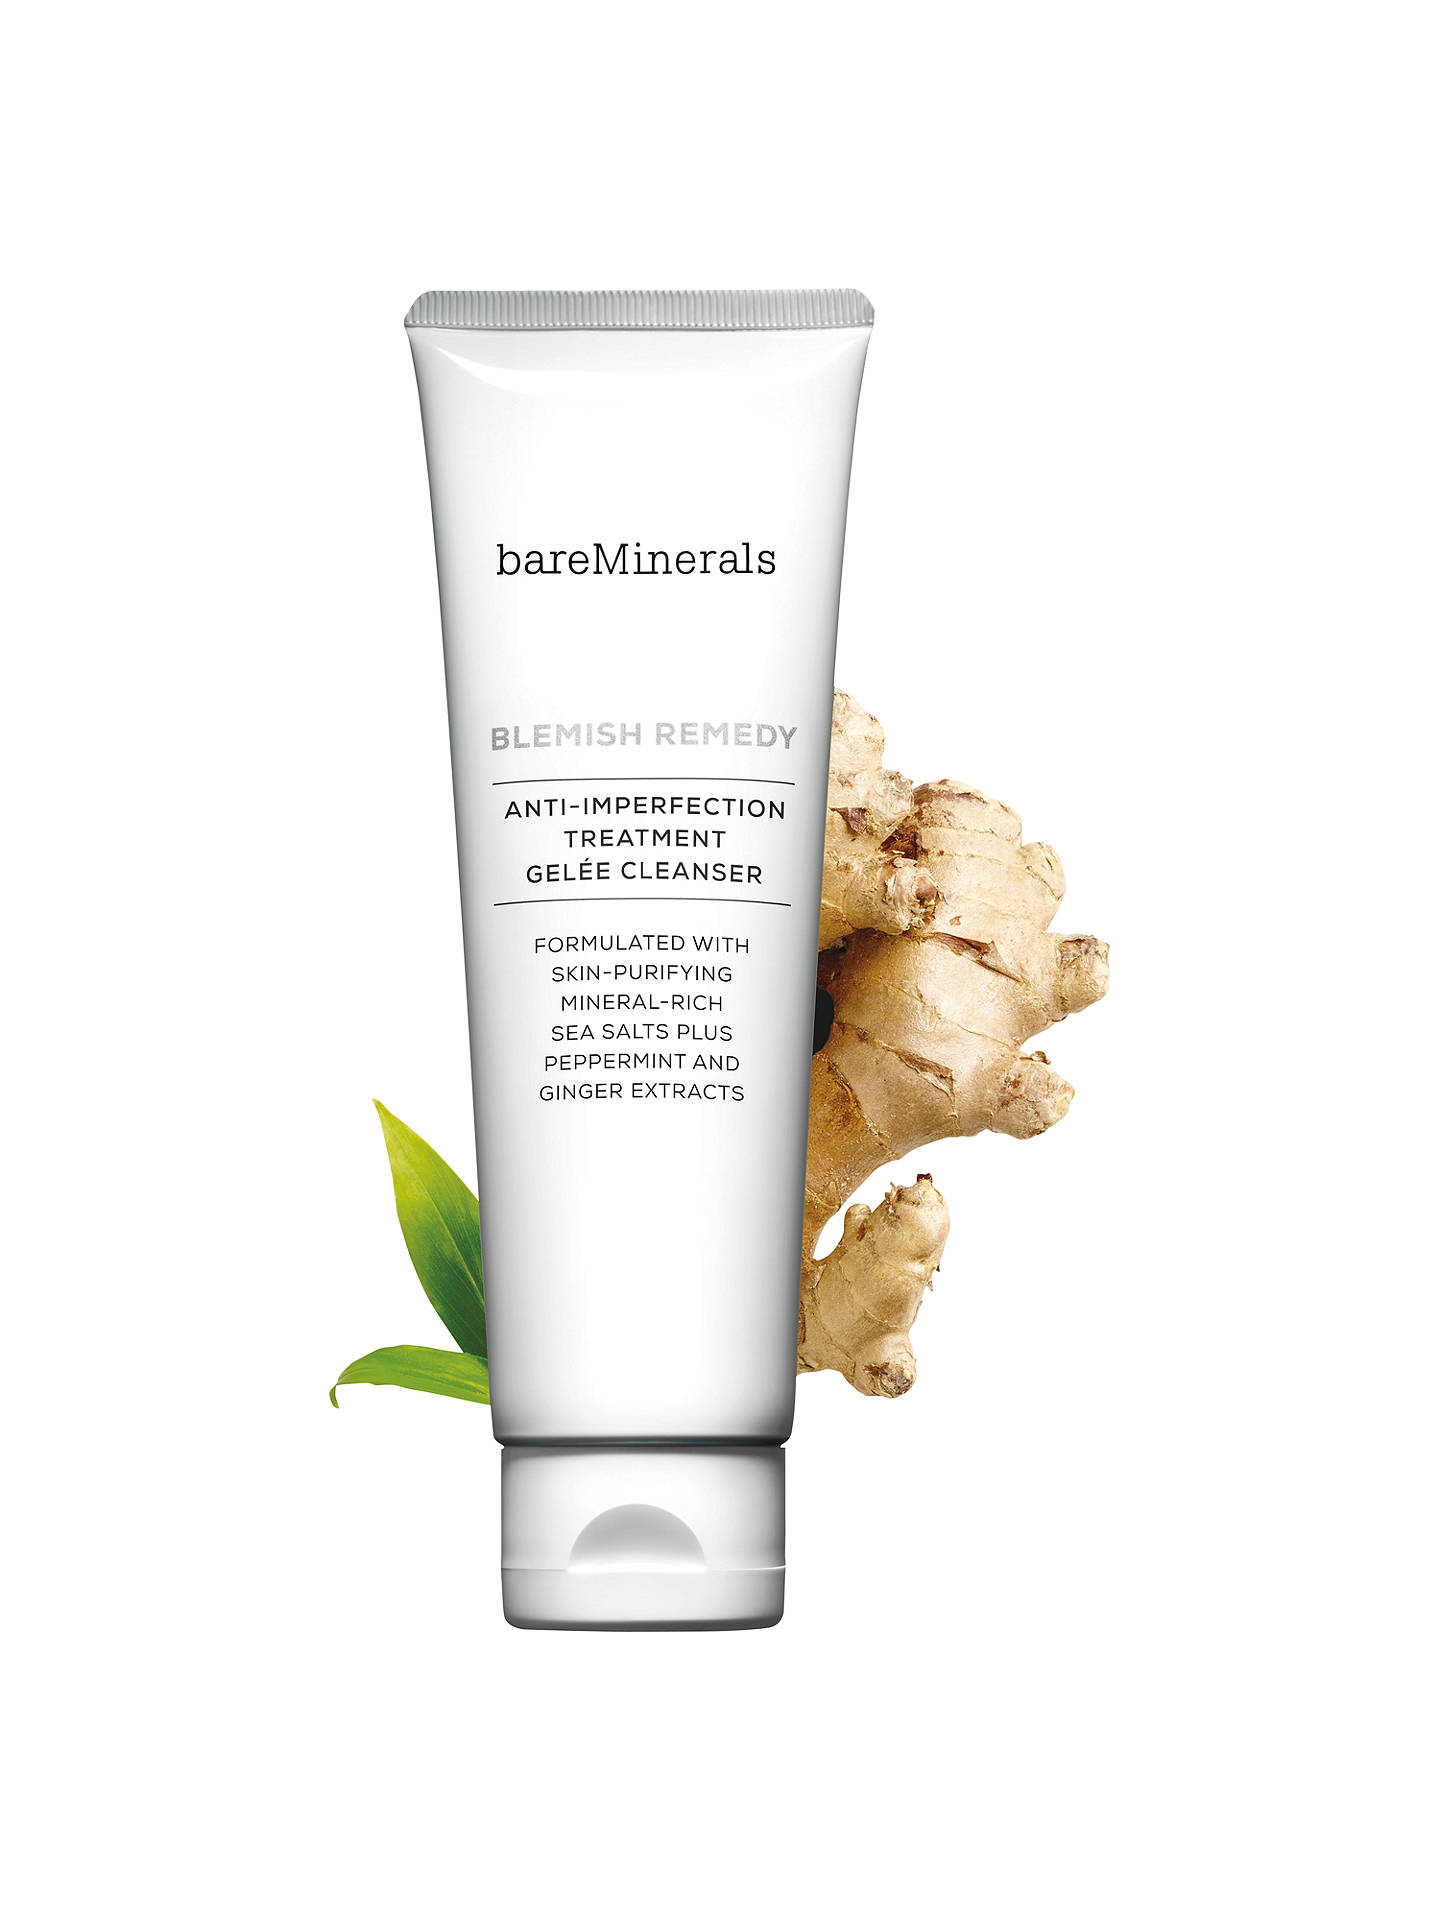 BuyBlemish Remedy Anti-Imperfection Gelée Cleanser, 125ml Online at johnlewis.com